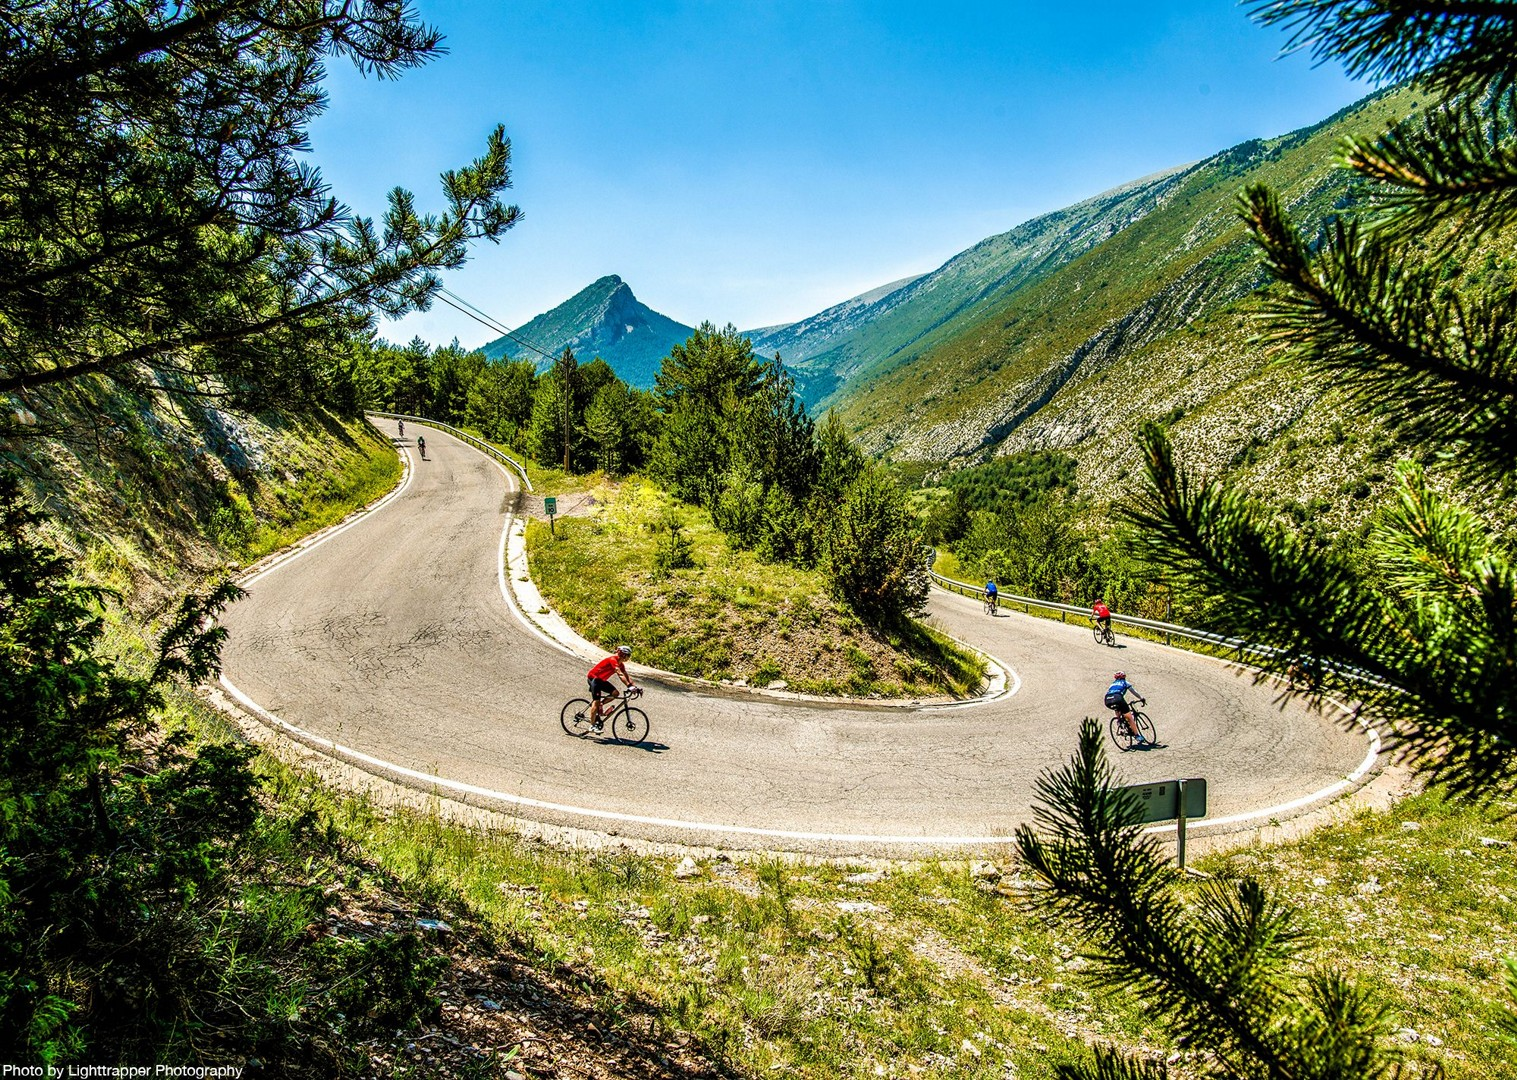 road-cycling-descent-spanish-pyrenees-coast-to-coast-holiday.jpg - NEW! Spain - Spanish Pyrenees Coast to Coast - Road Cycling